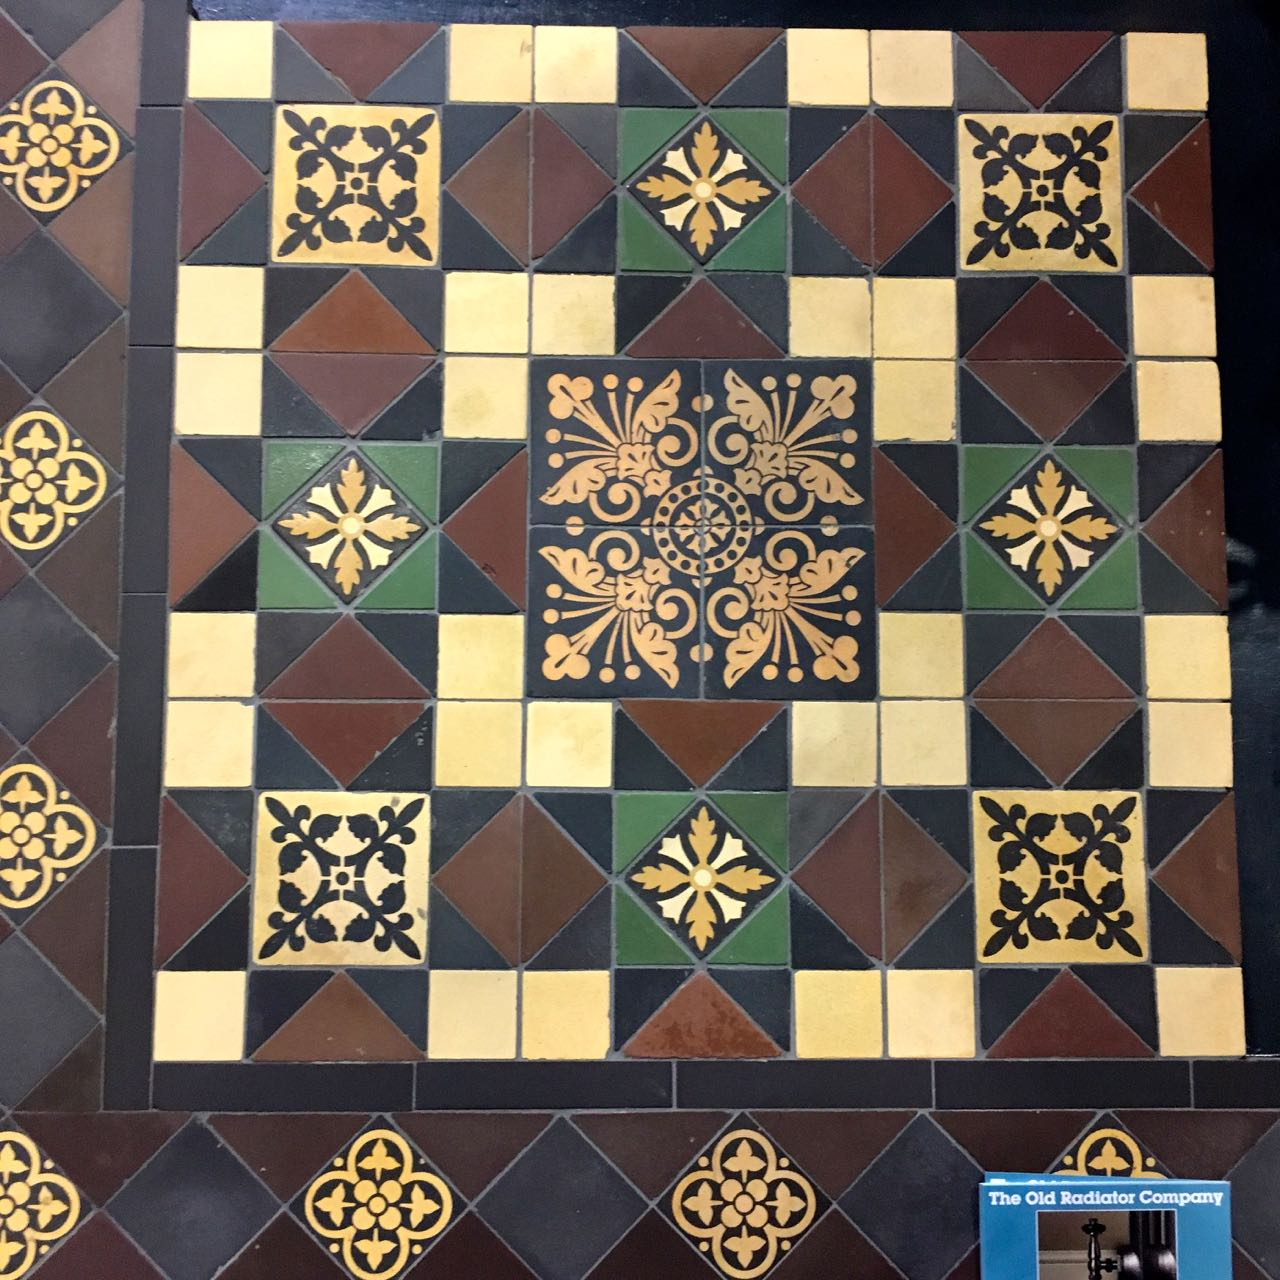 A traditional pattern using geometric and encaustic tiles